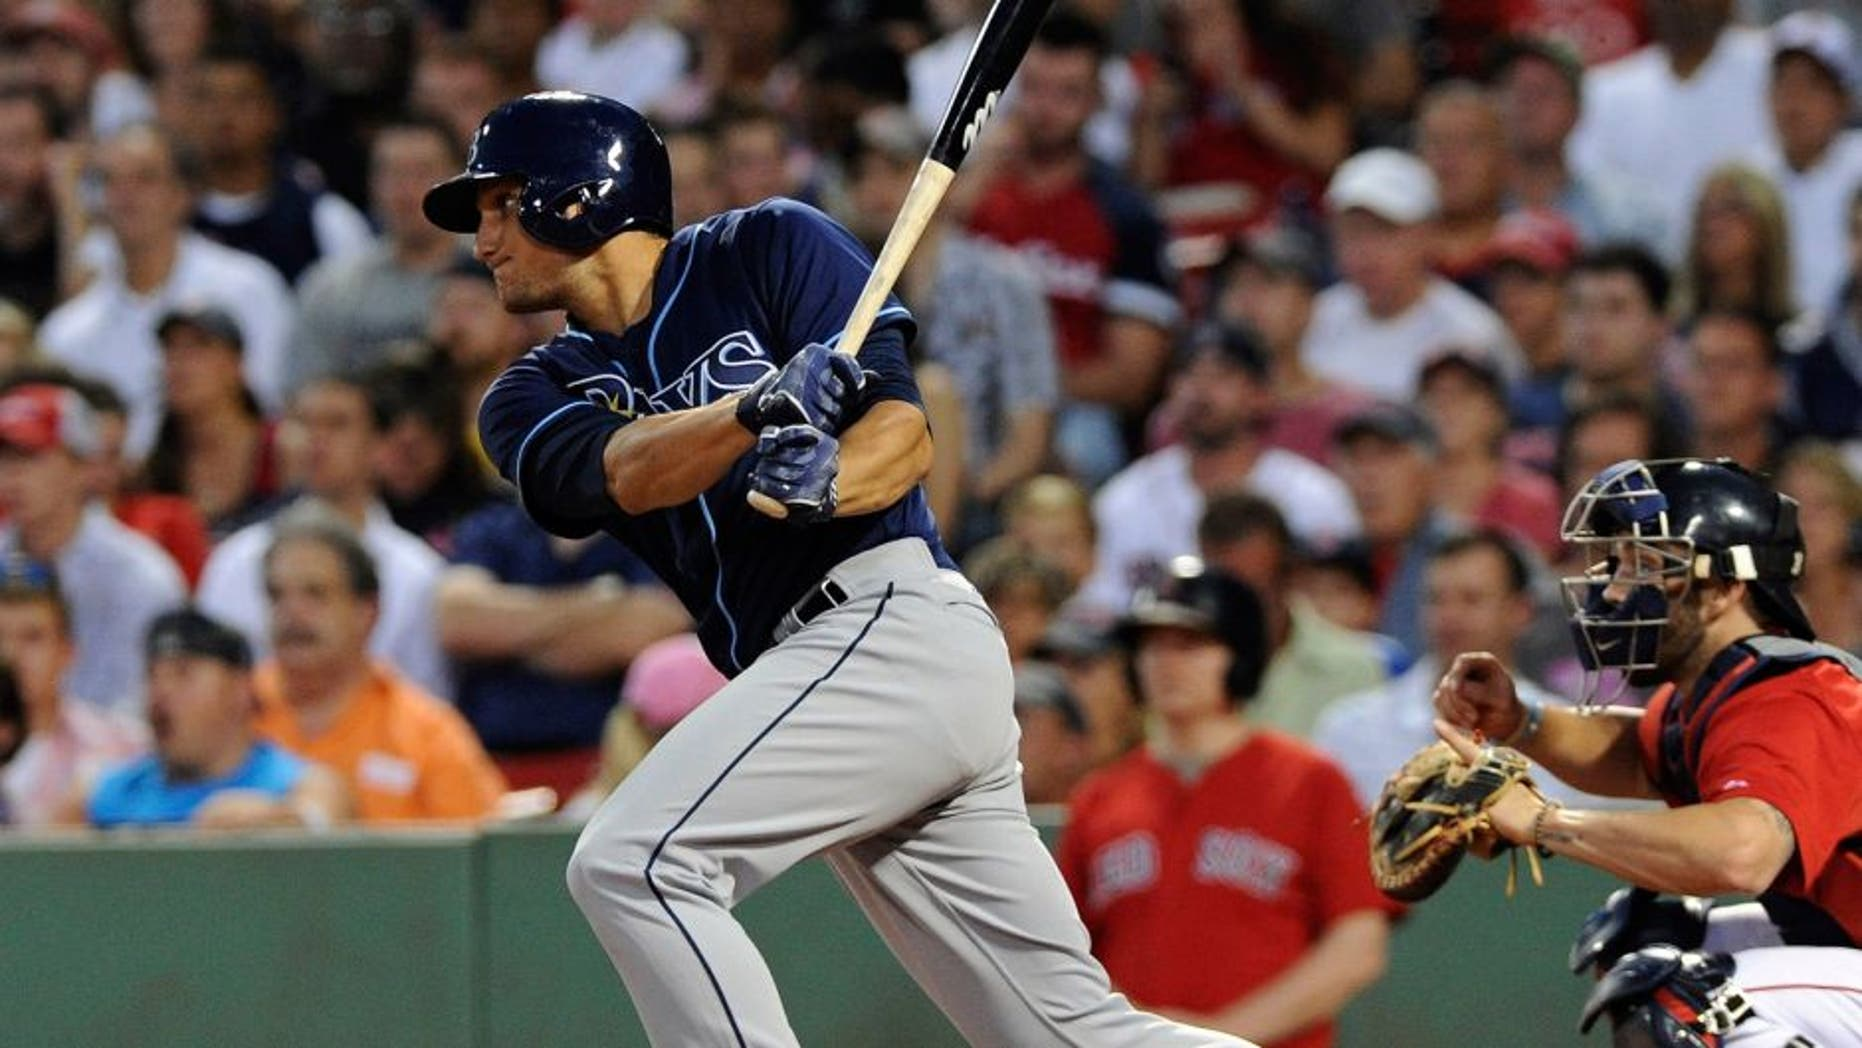 Jul 31, 2015; Boston, MA, USA; Tampa Bay Rays left fielder Mikie Mahtook (27) hits an RBI single during the third inning against the Boston Red Sox at Fenway Park. Mandatory Credit: Bob DeChiara-USA TODAY Sports